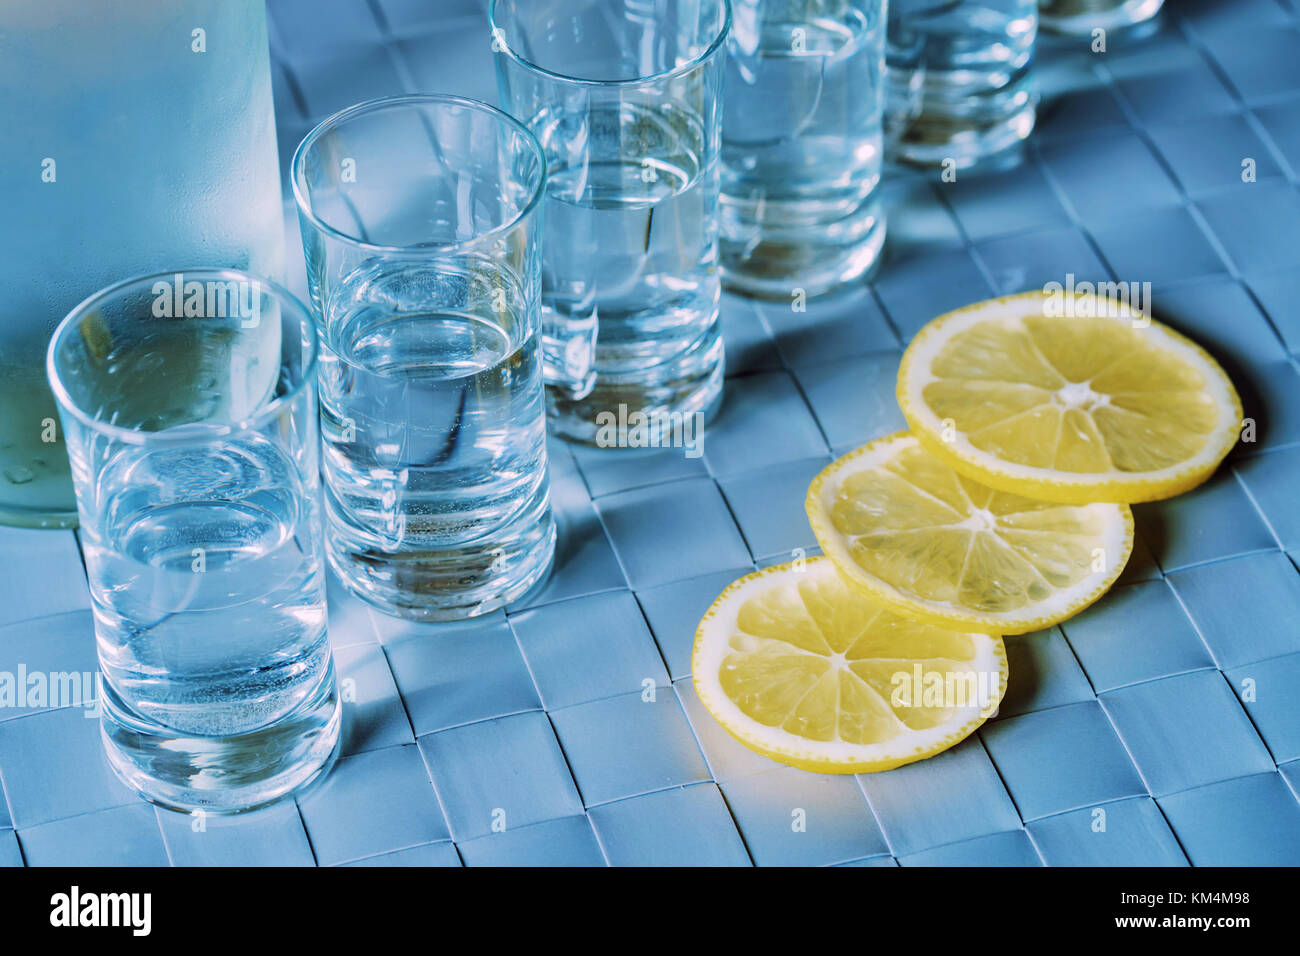 Vodka shot glass and lemon on blue surface - Stock Image